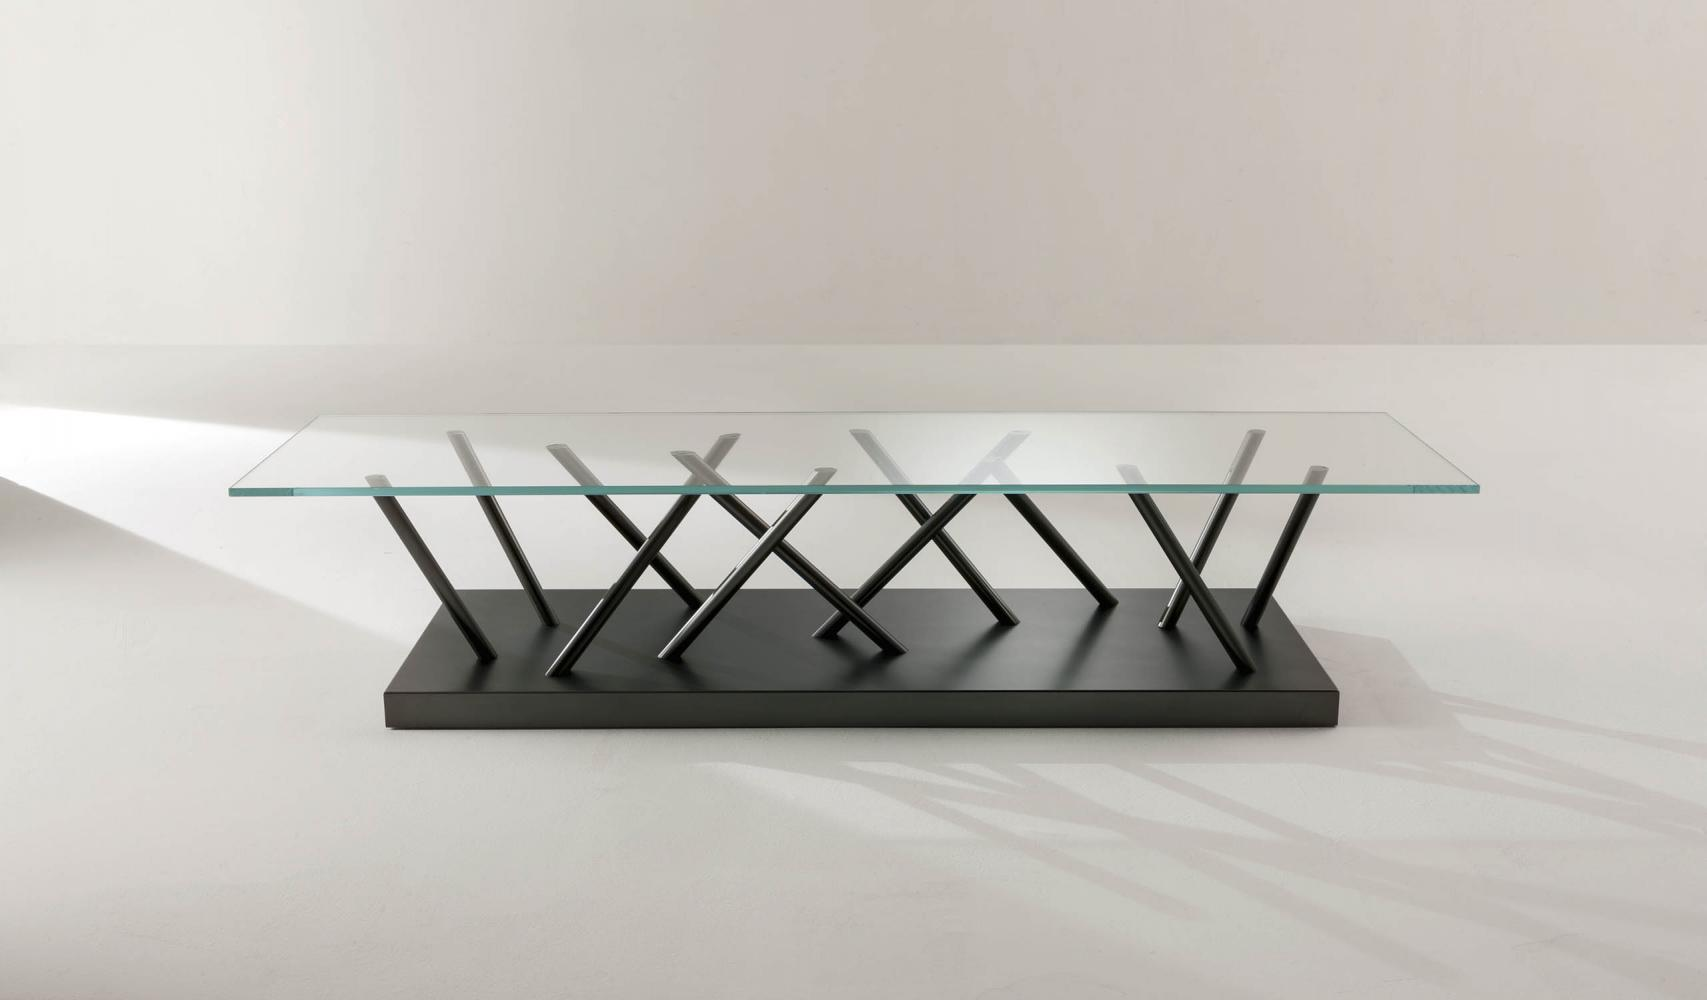 crystal low table by sottsass associati in glass and metal for a contemporary interior decor